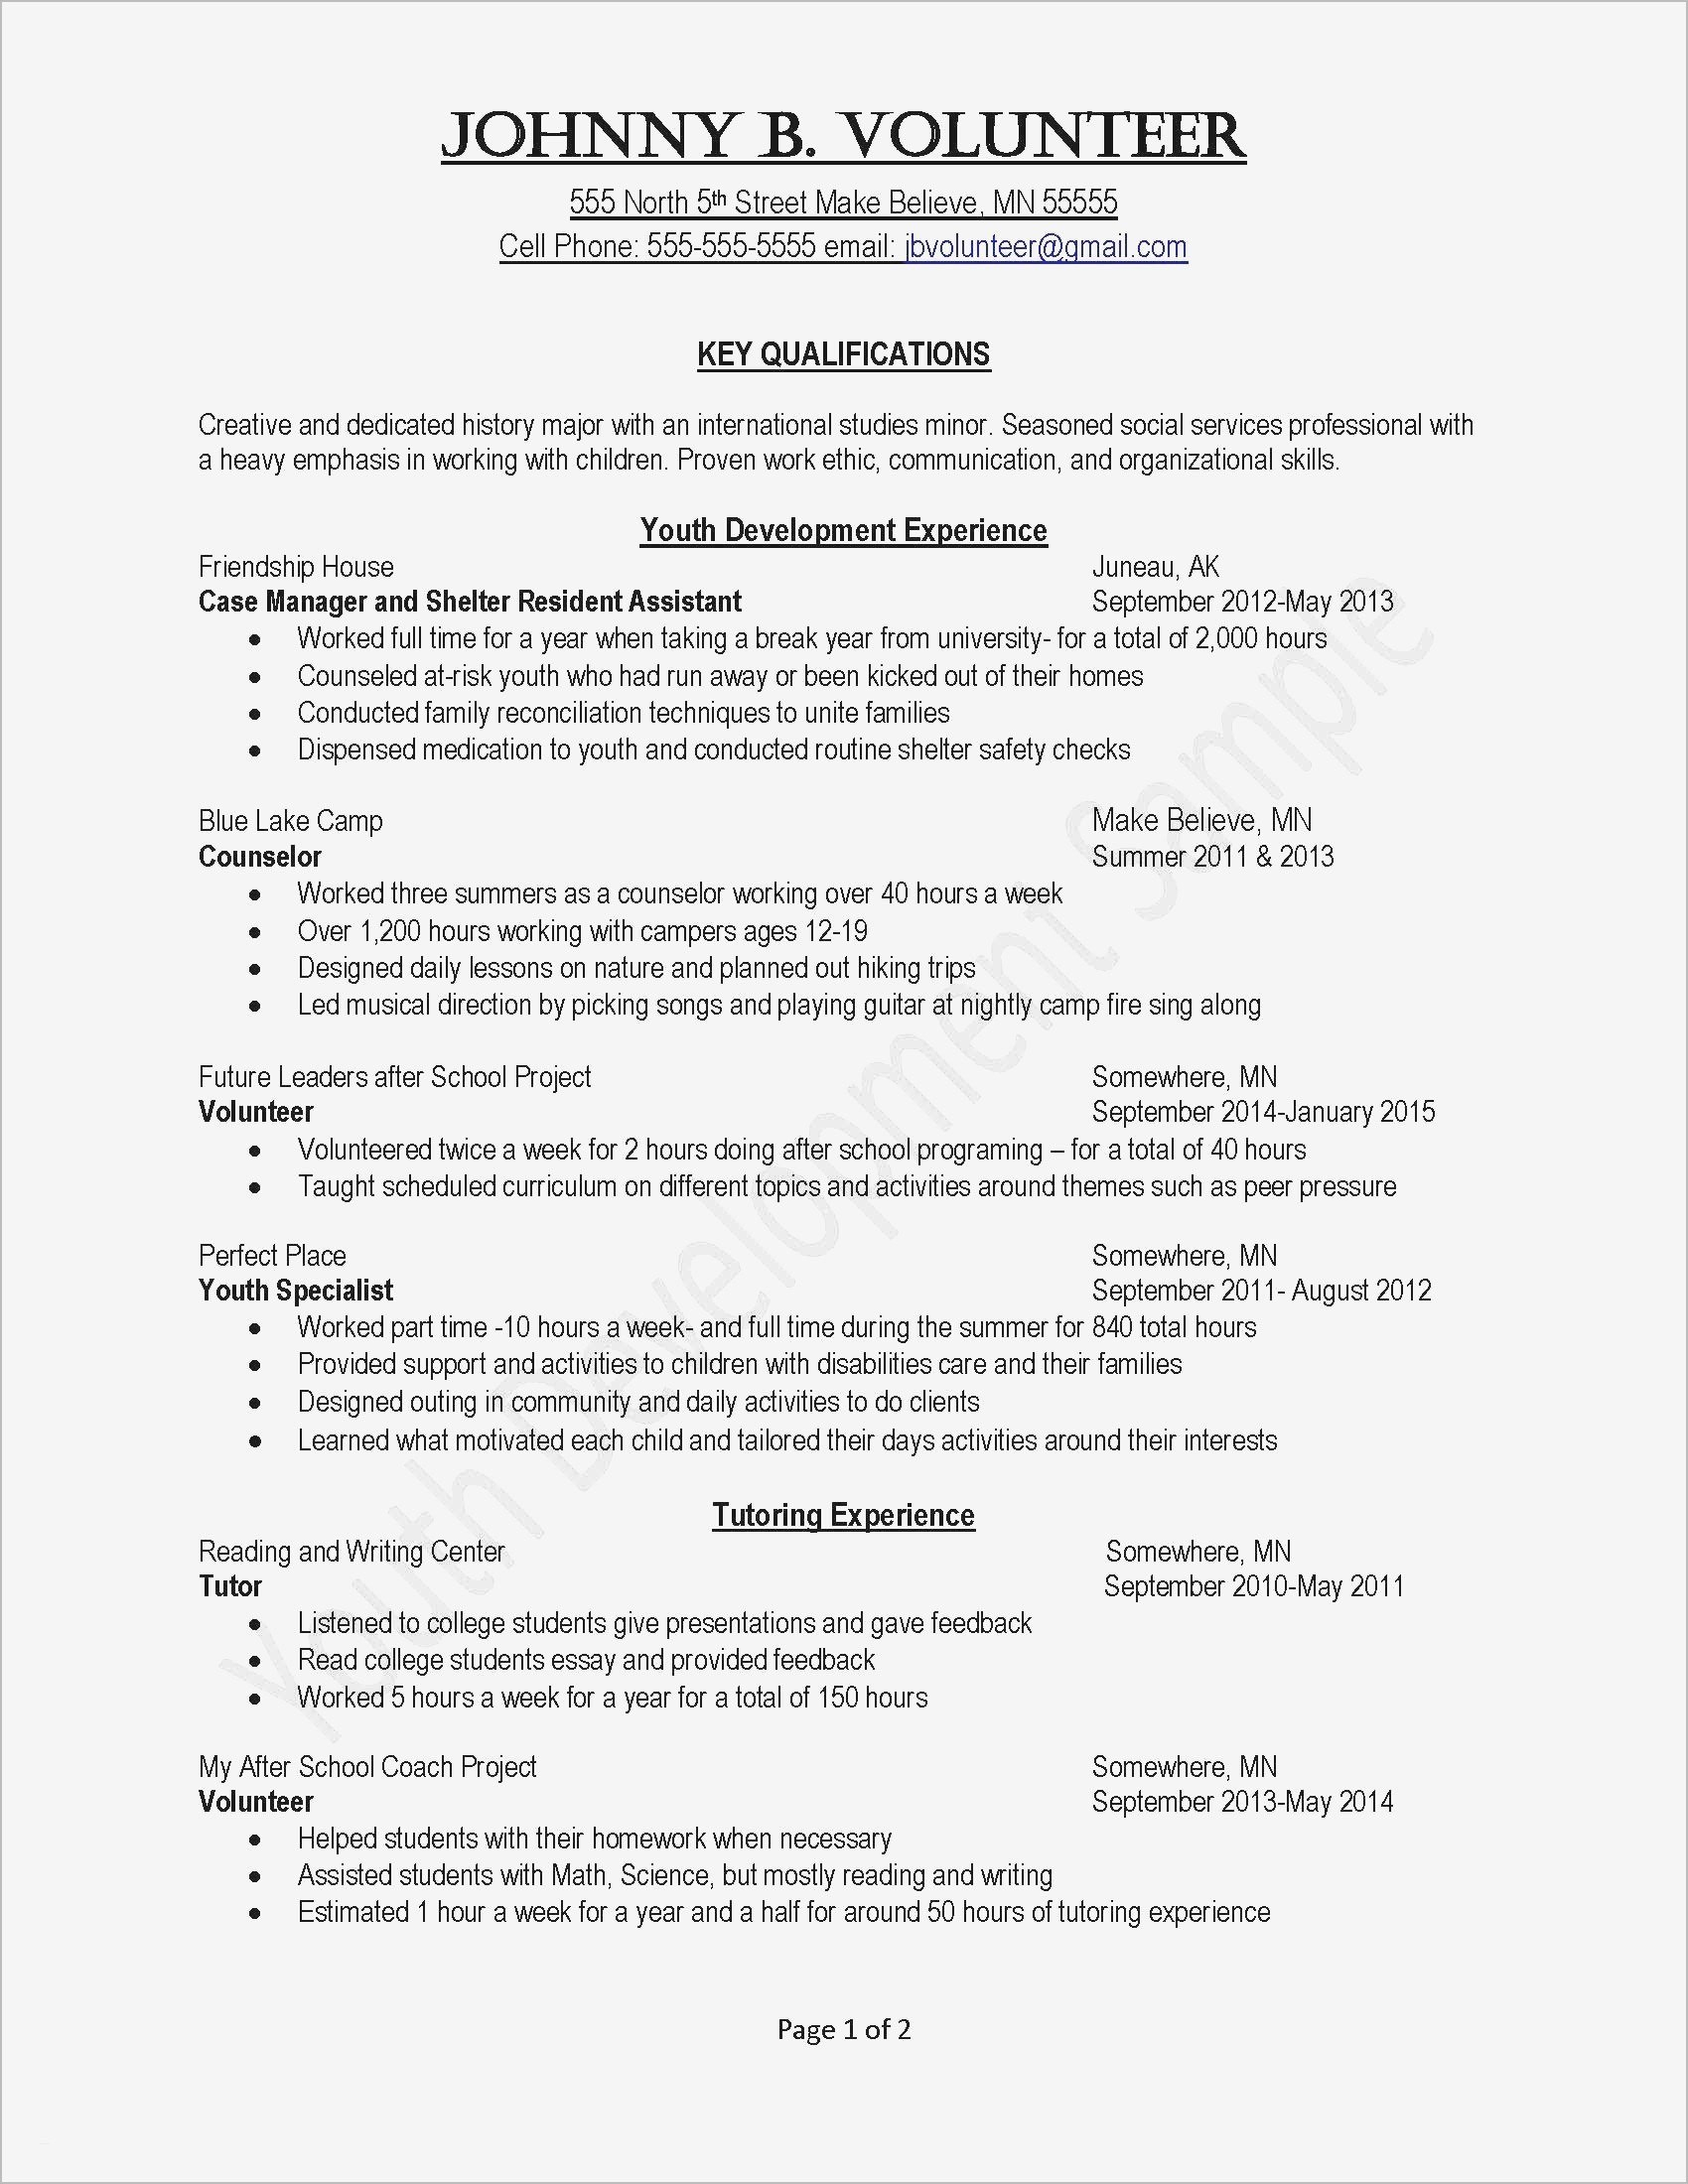 Graphic Design Cover Letter Template - Good Cover Letter Template Best Best Job Fer Letter Template Us